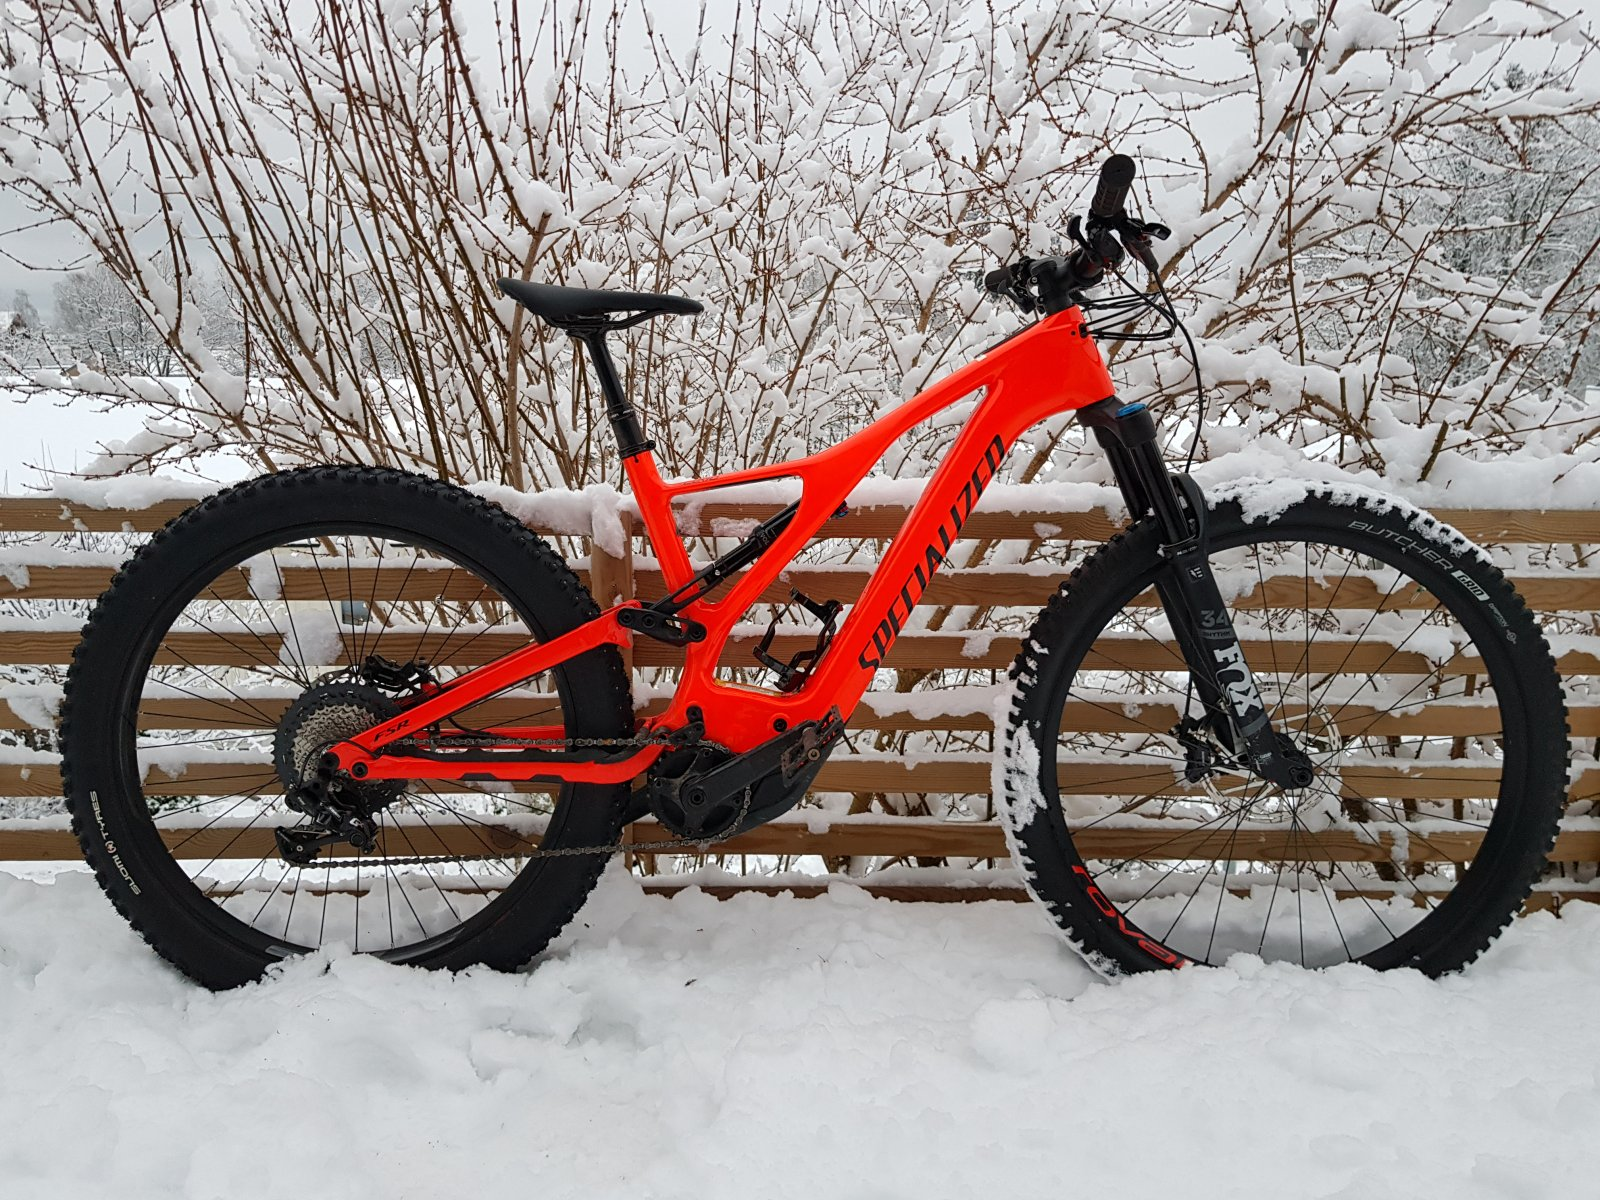 Assist comes in handy in snow conditions. But a frozen ebike battery delivers less range.